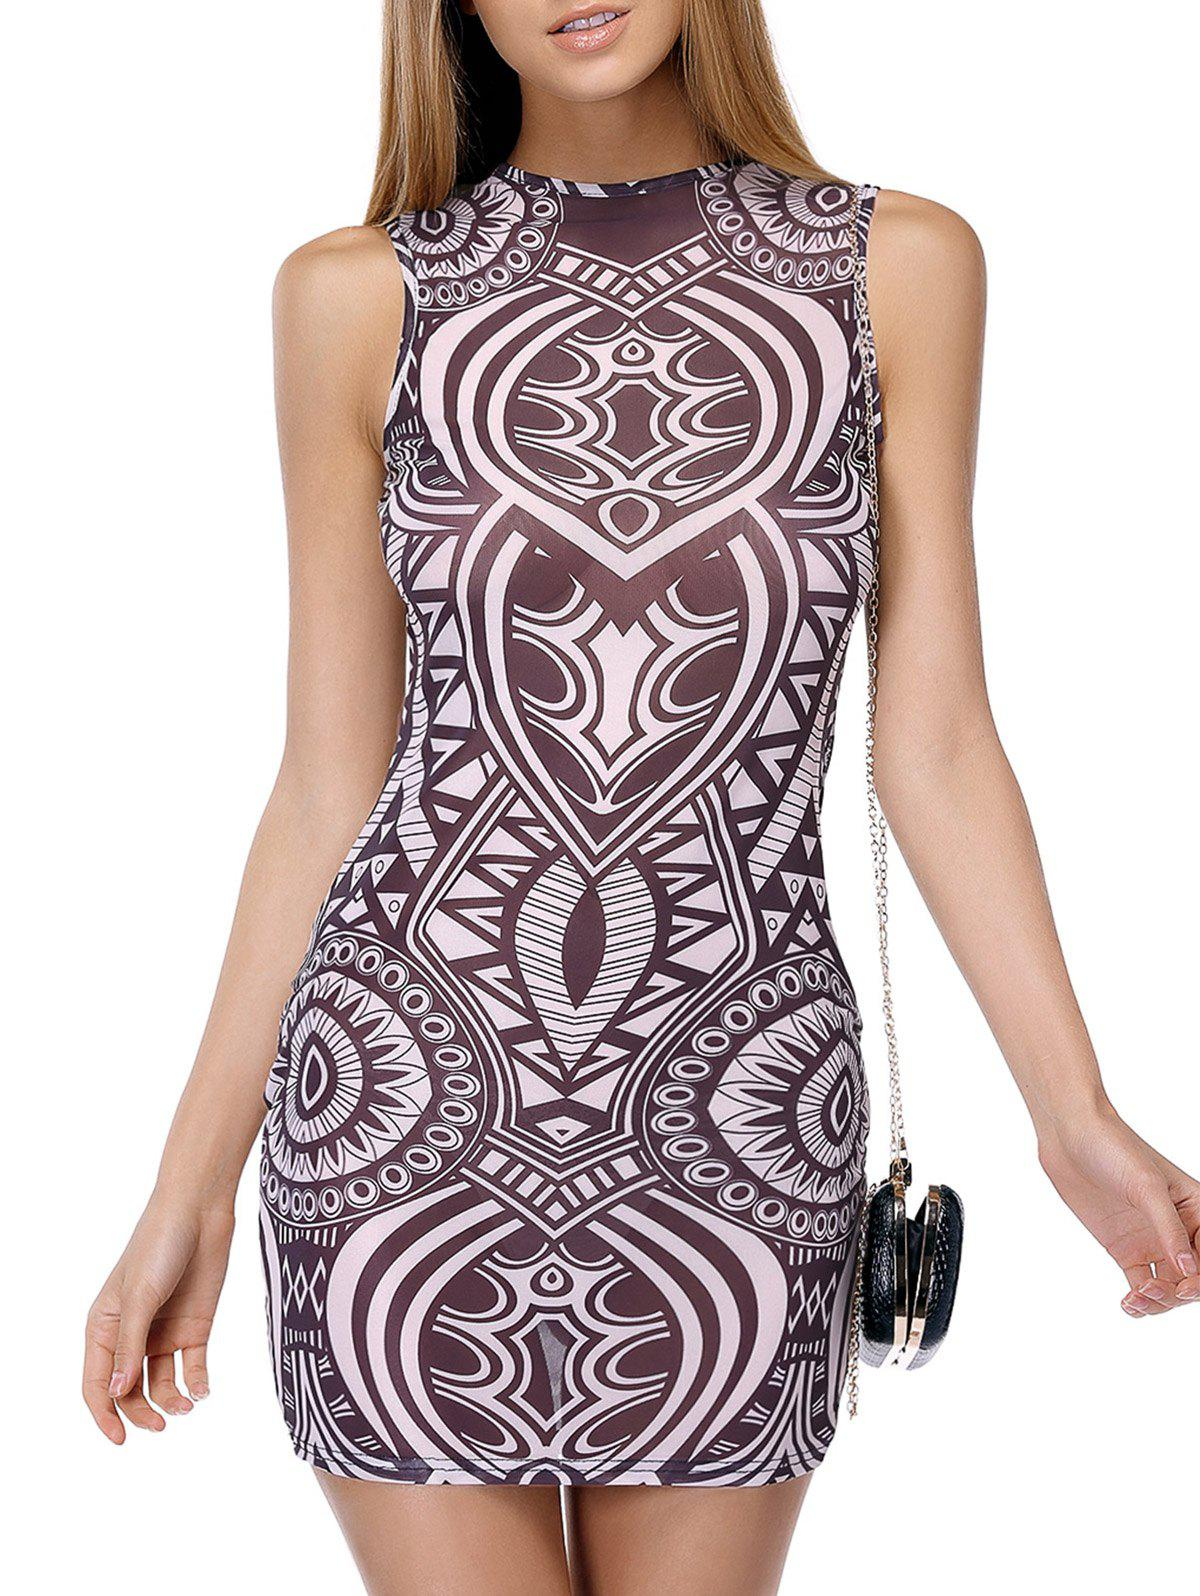 Bodycon Printed See-Through Dress - TEA COLORED XL